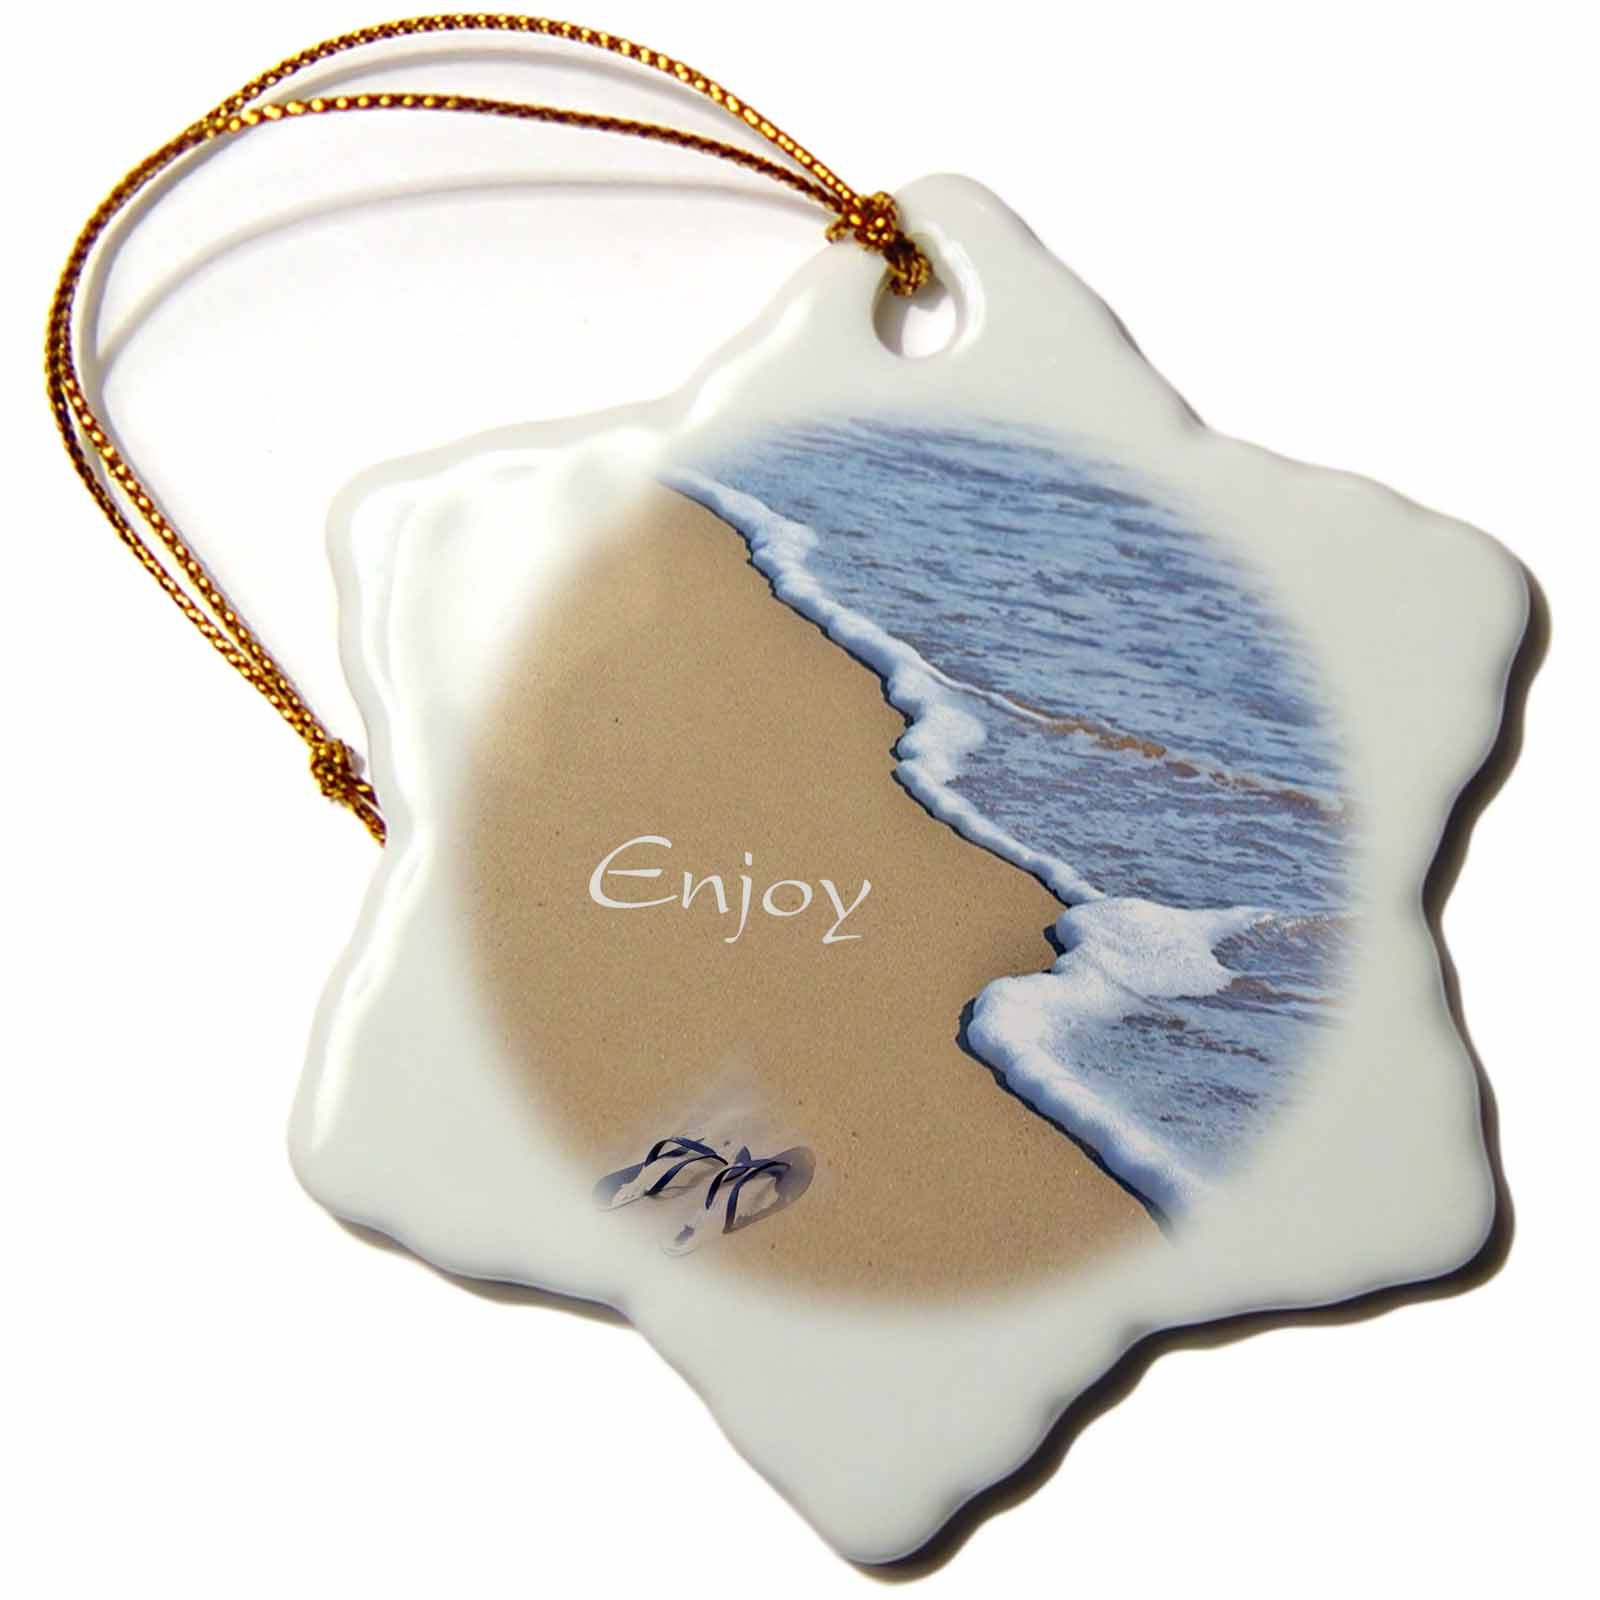 3dRose Print of Beach Shore with Enjoy And Flip Flops, Snowflake Ornament, Porcelain, 3-inch